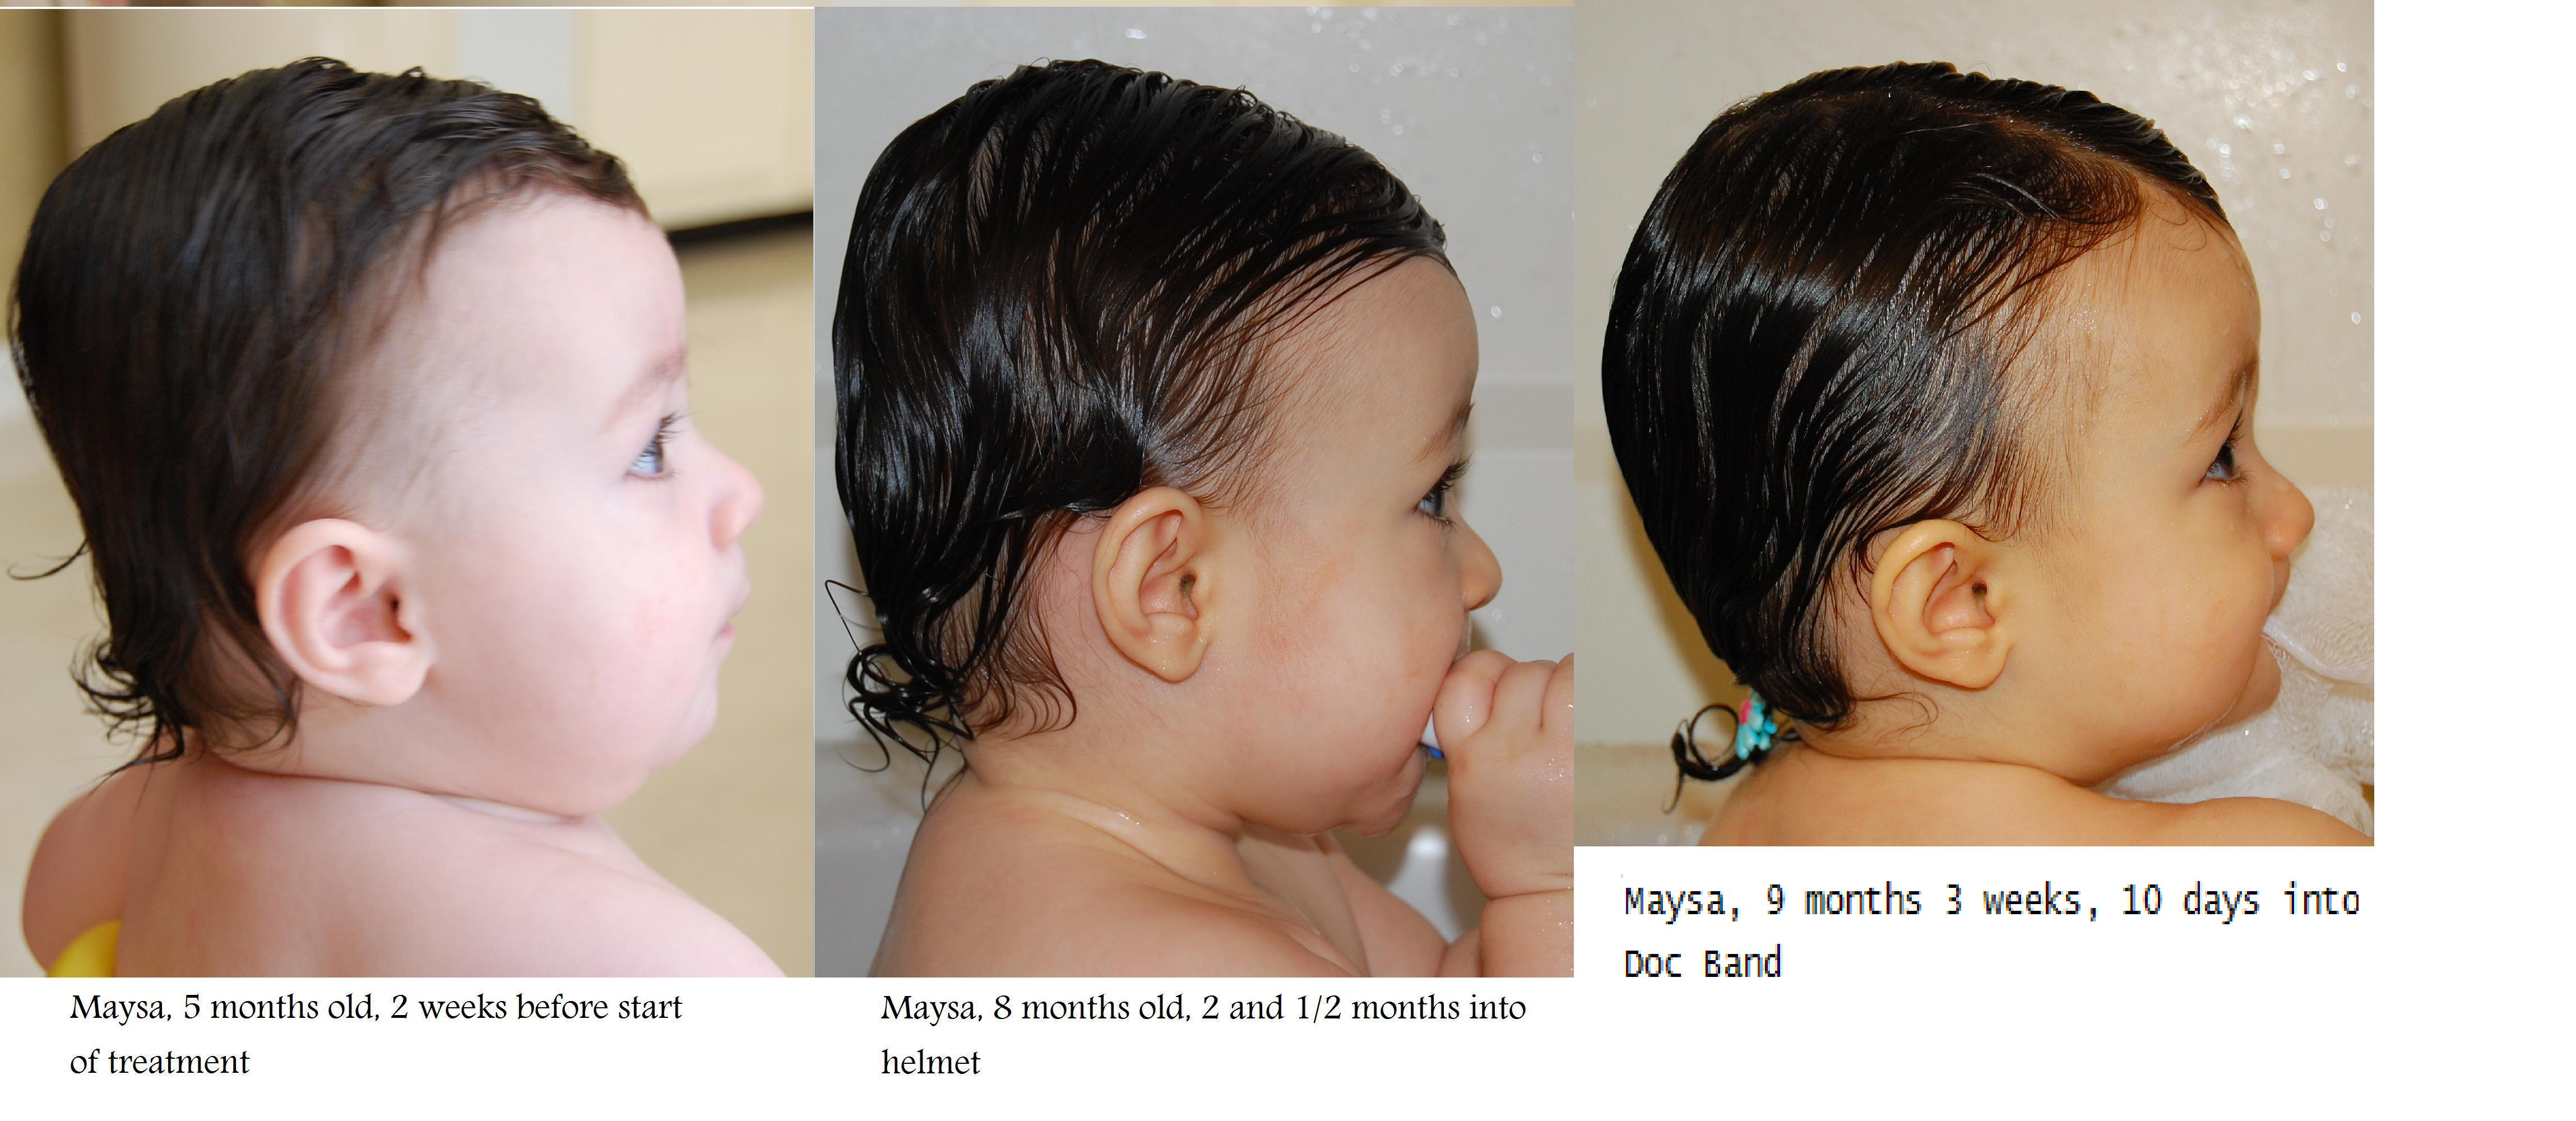 Maysa's Right Profile at 5m, 8m and 9m 3w